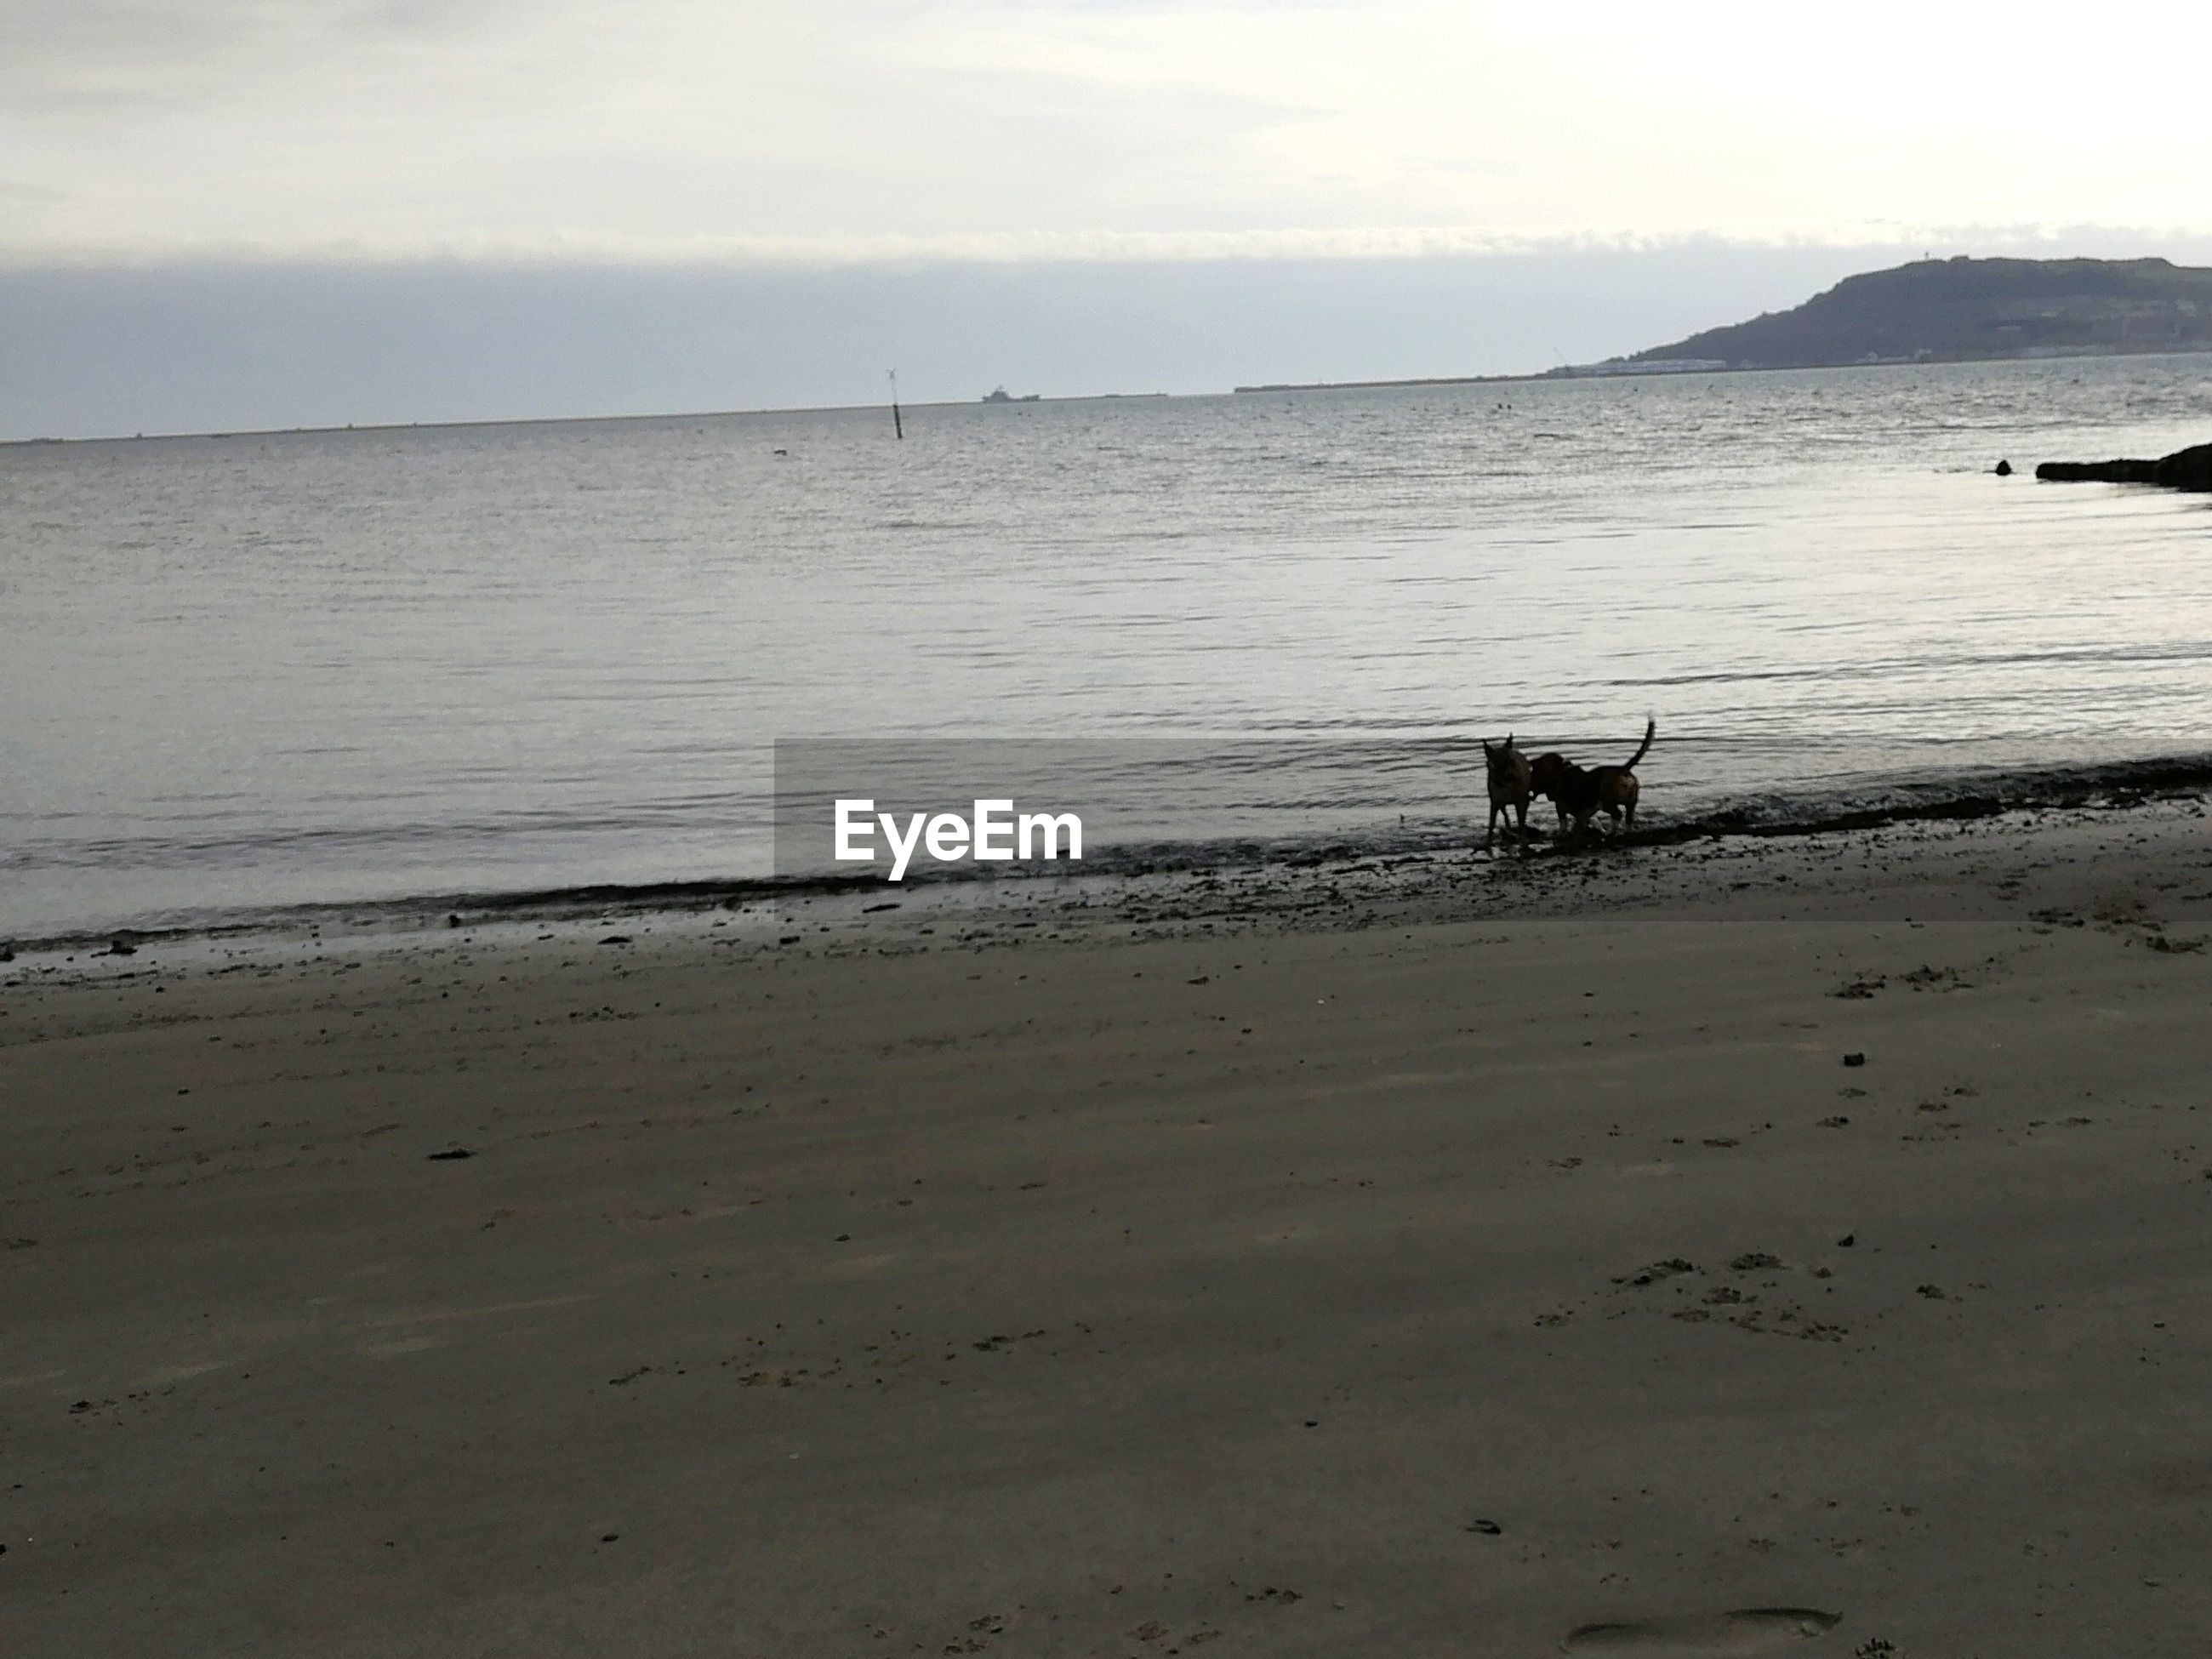 sea, water, beach, shore, nature, sand, sky, domestic animals, dog, scenics, animal themes, beauty in nature, horizon over water, pets, outdoors, mammal, one animal, no people, day